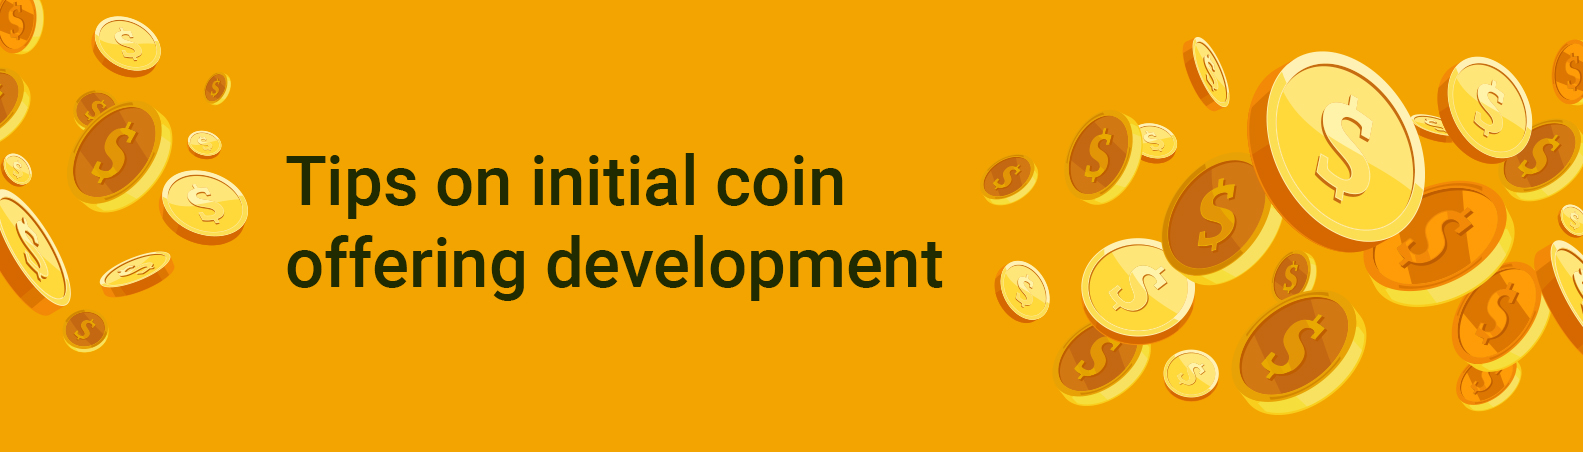 Tips on initial coin offering development